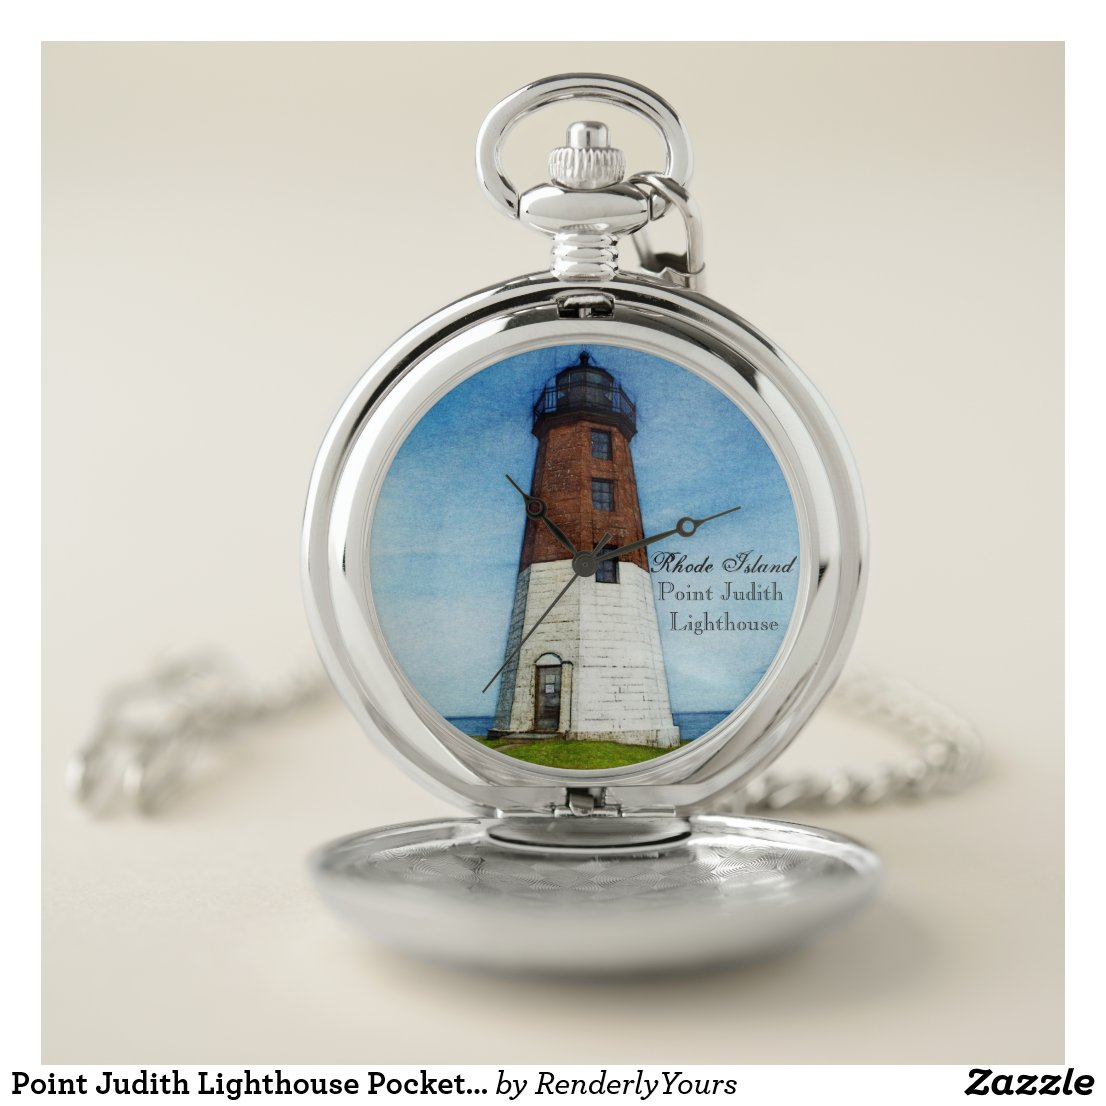 Point Judith Lighthouse Pocket Watch